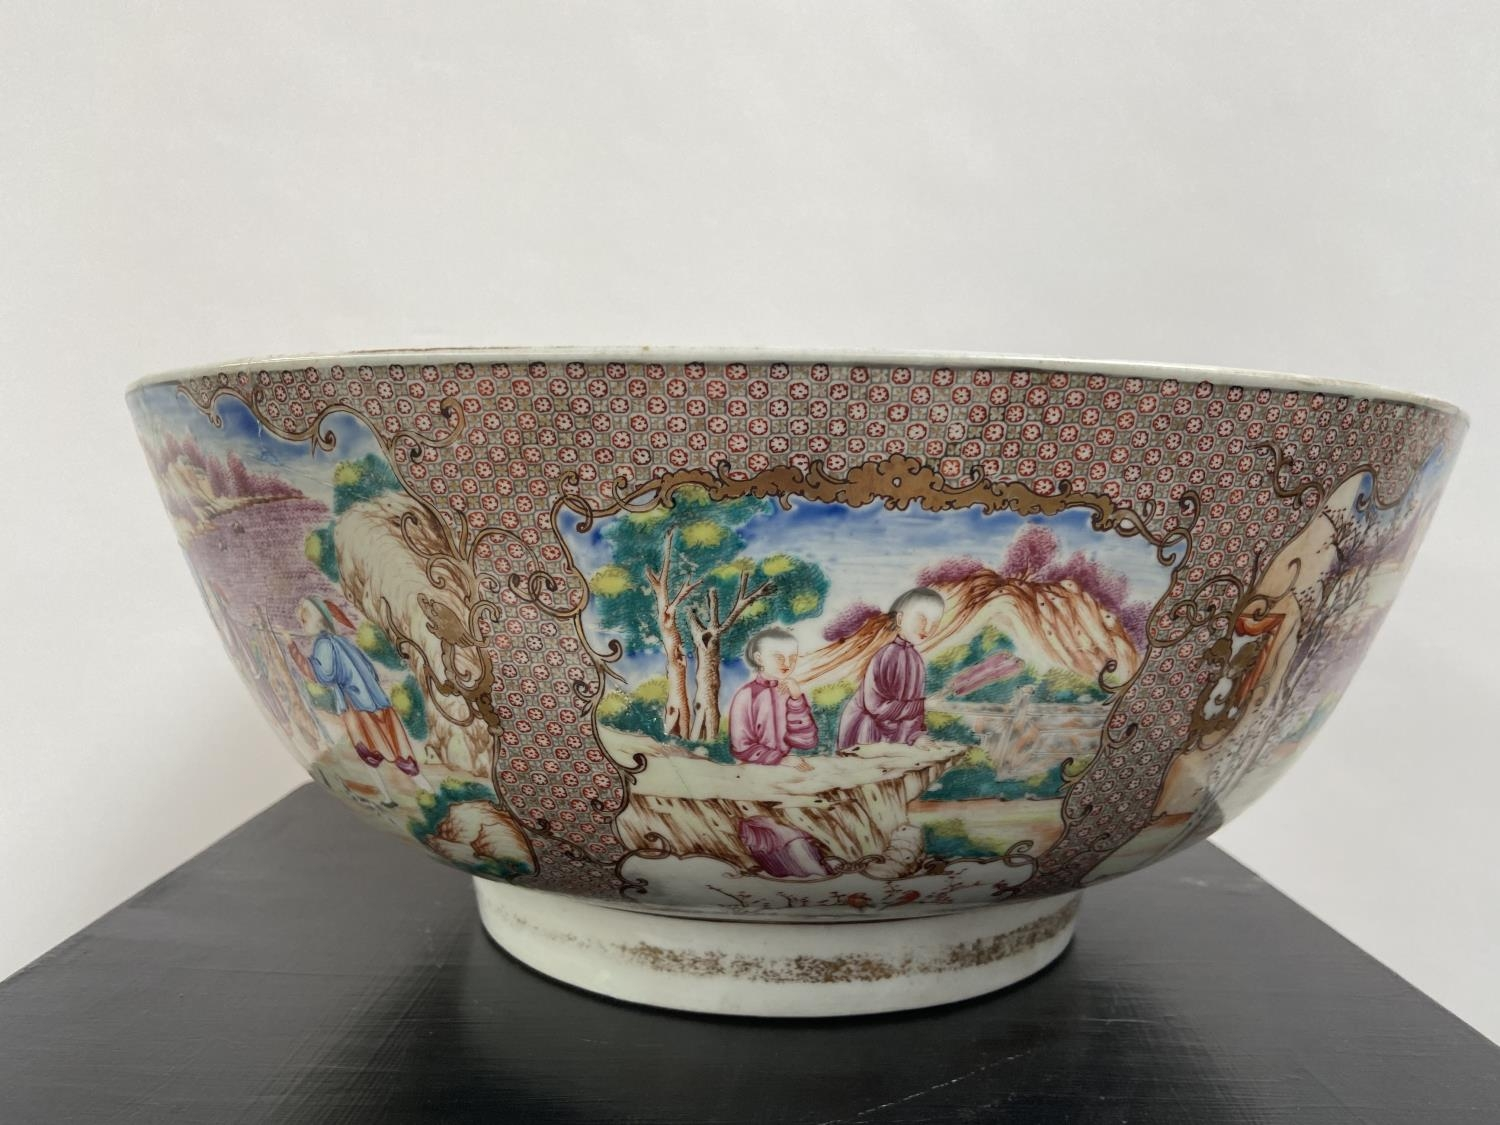 A LARGE 19TH CENTURY CHINESE HAND PAINTED BOWL. EXTERIOR DEPICTS CHINESE HUNTING SCENE PANELS. THE - Image 24 of 39